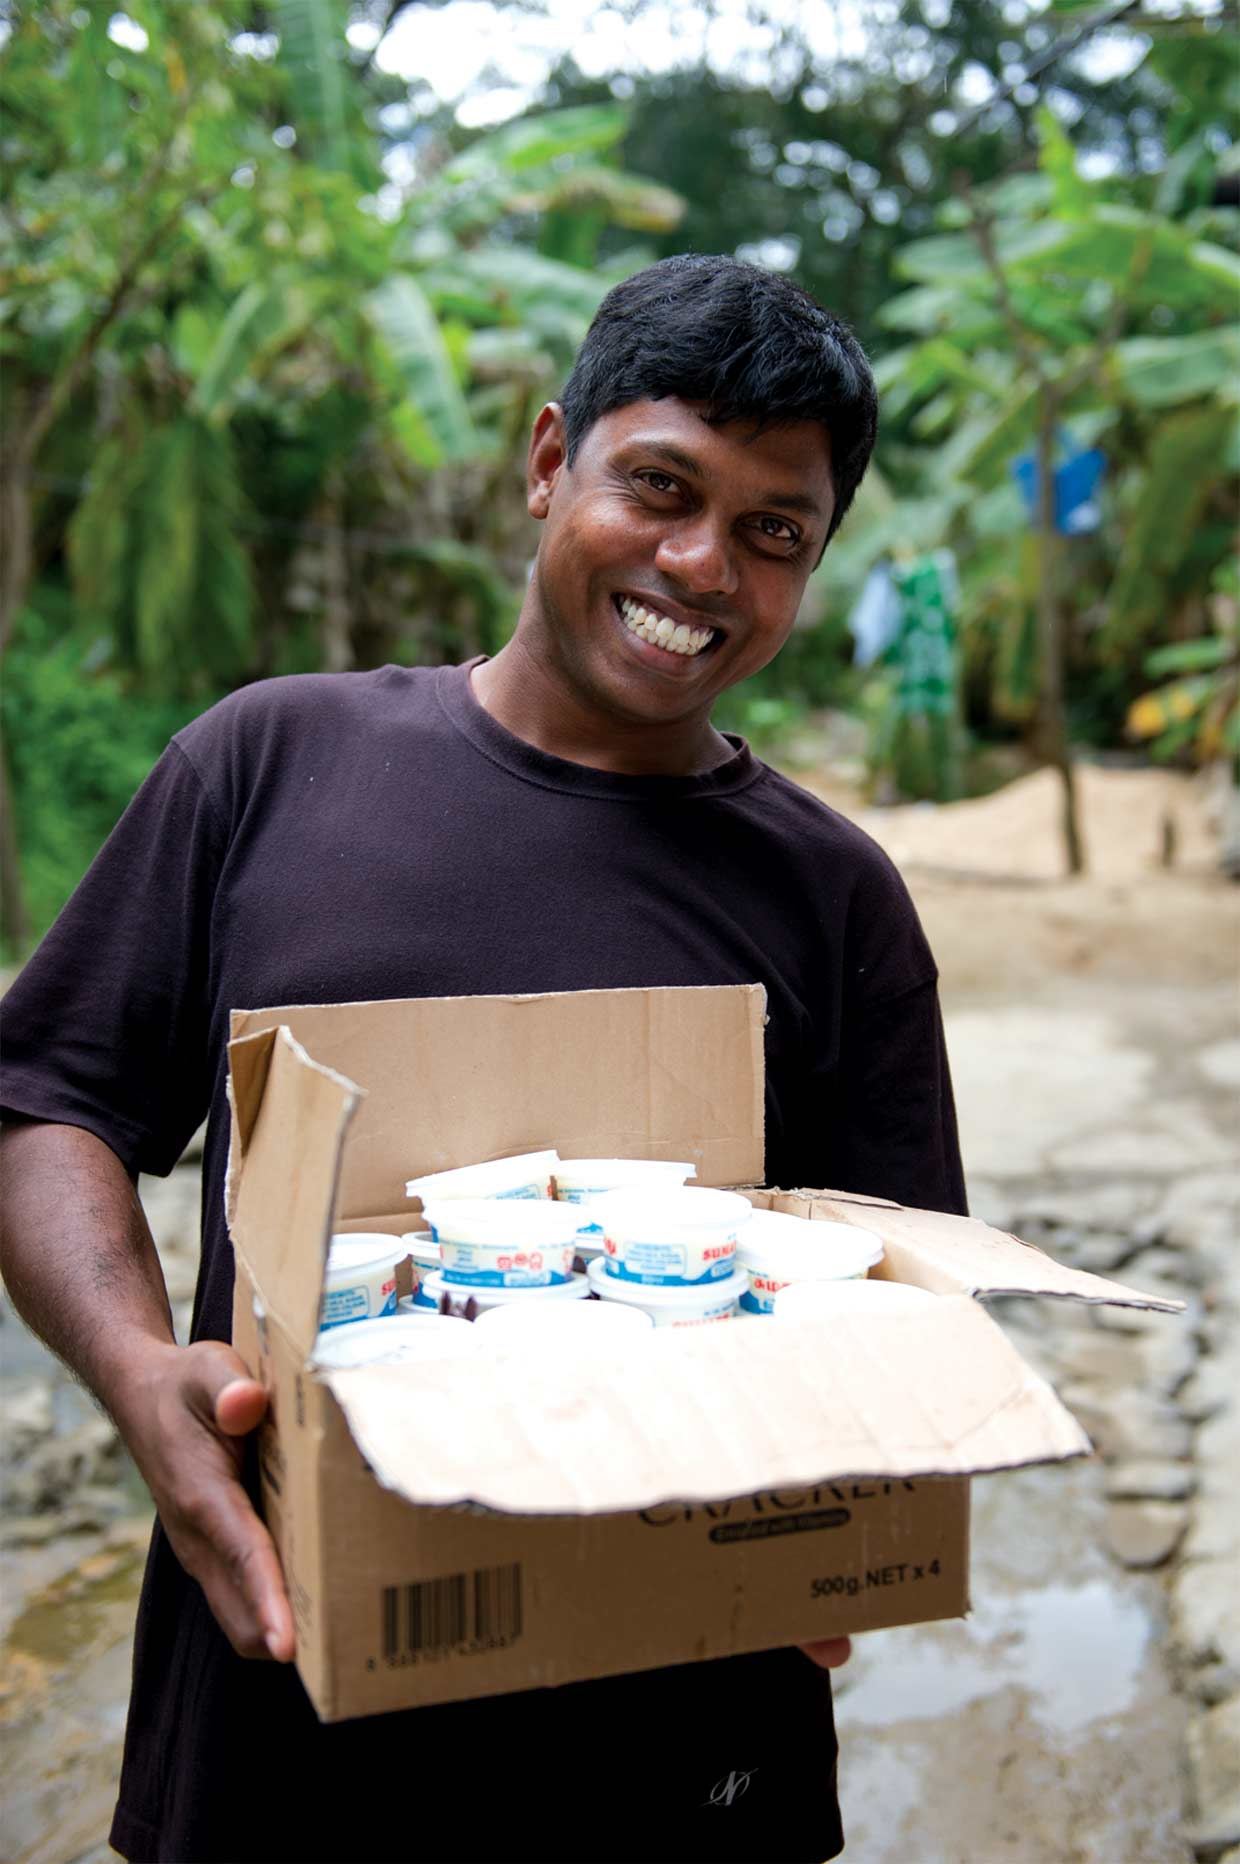 Changing Lives – a recipient of the Small Entrepreneur Programme with the fruits of his labour. The programme initiated in the aftermath of the 2004 Asian Tsunami, has helped over 750 individuals establish themselves as small time businessmen.